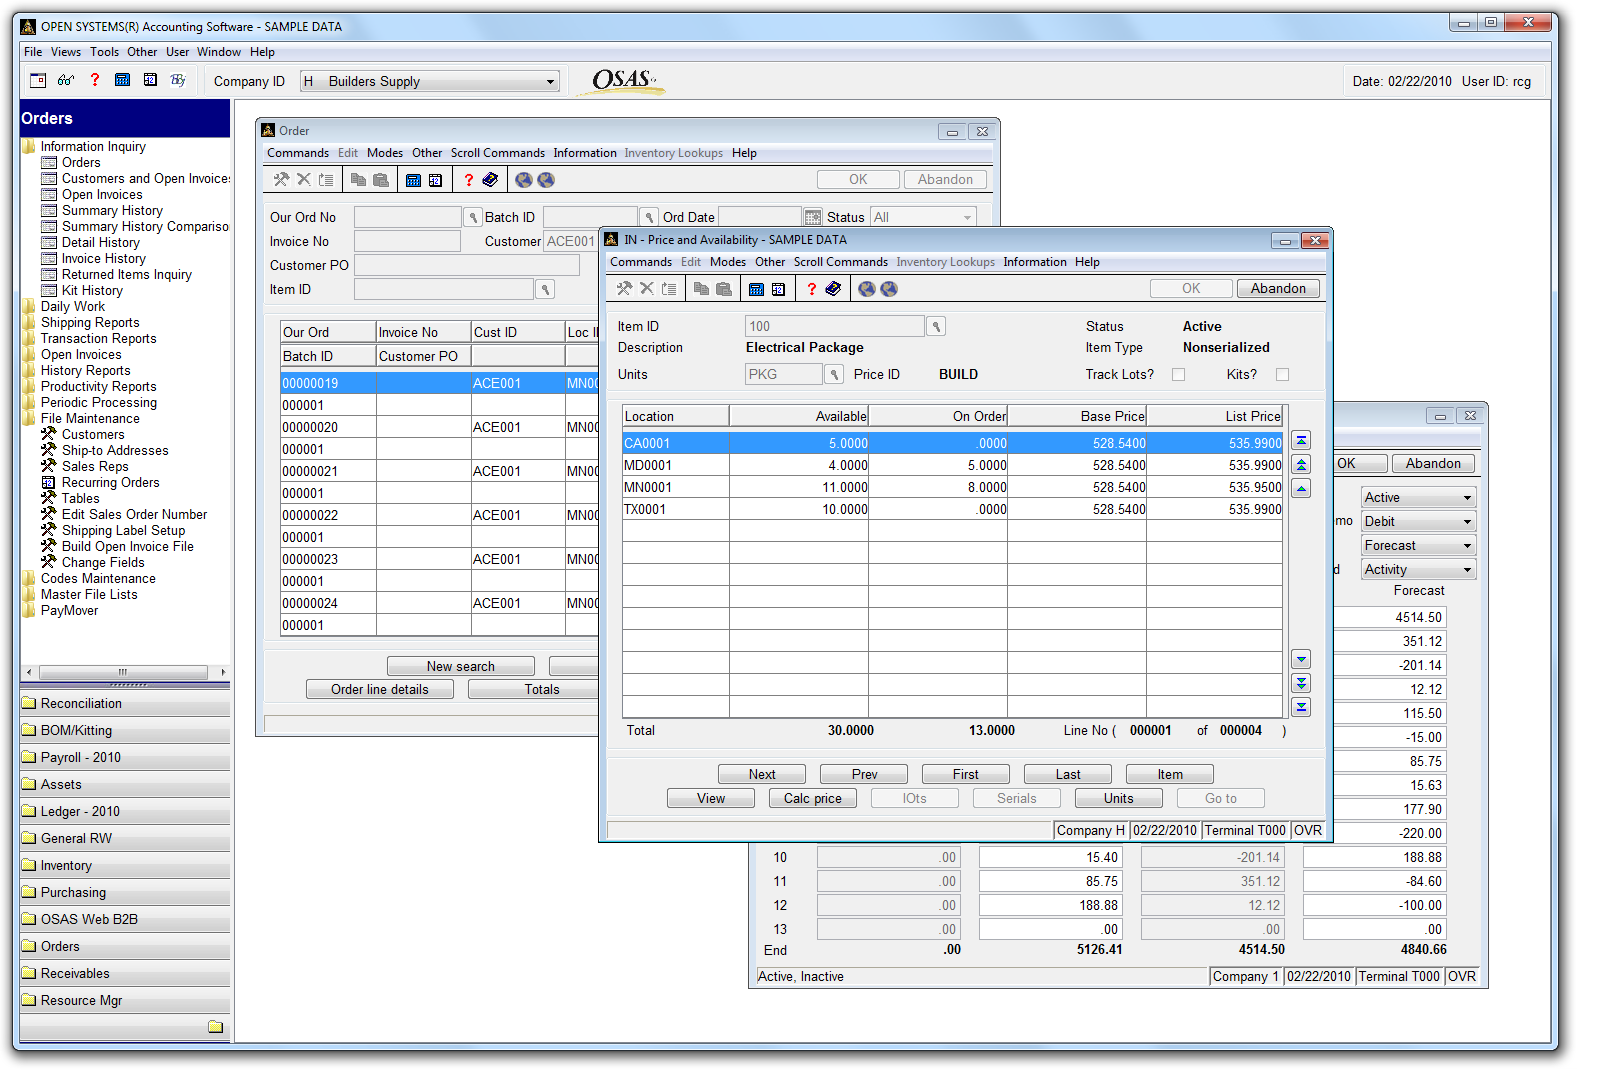 Open Systems Accounting Software Response Computer Group